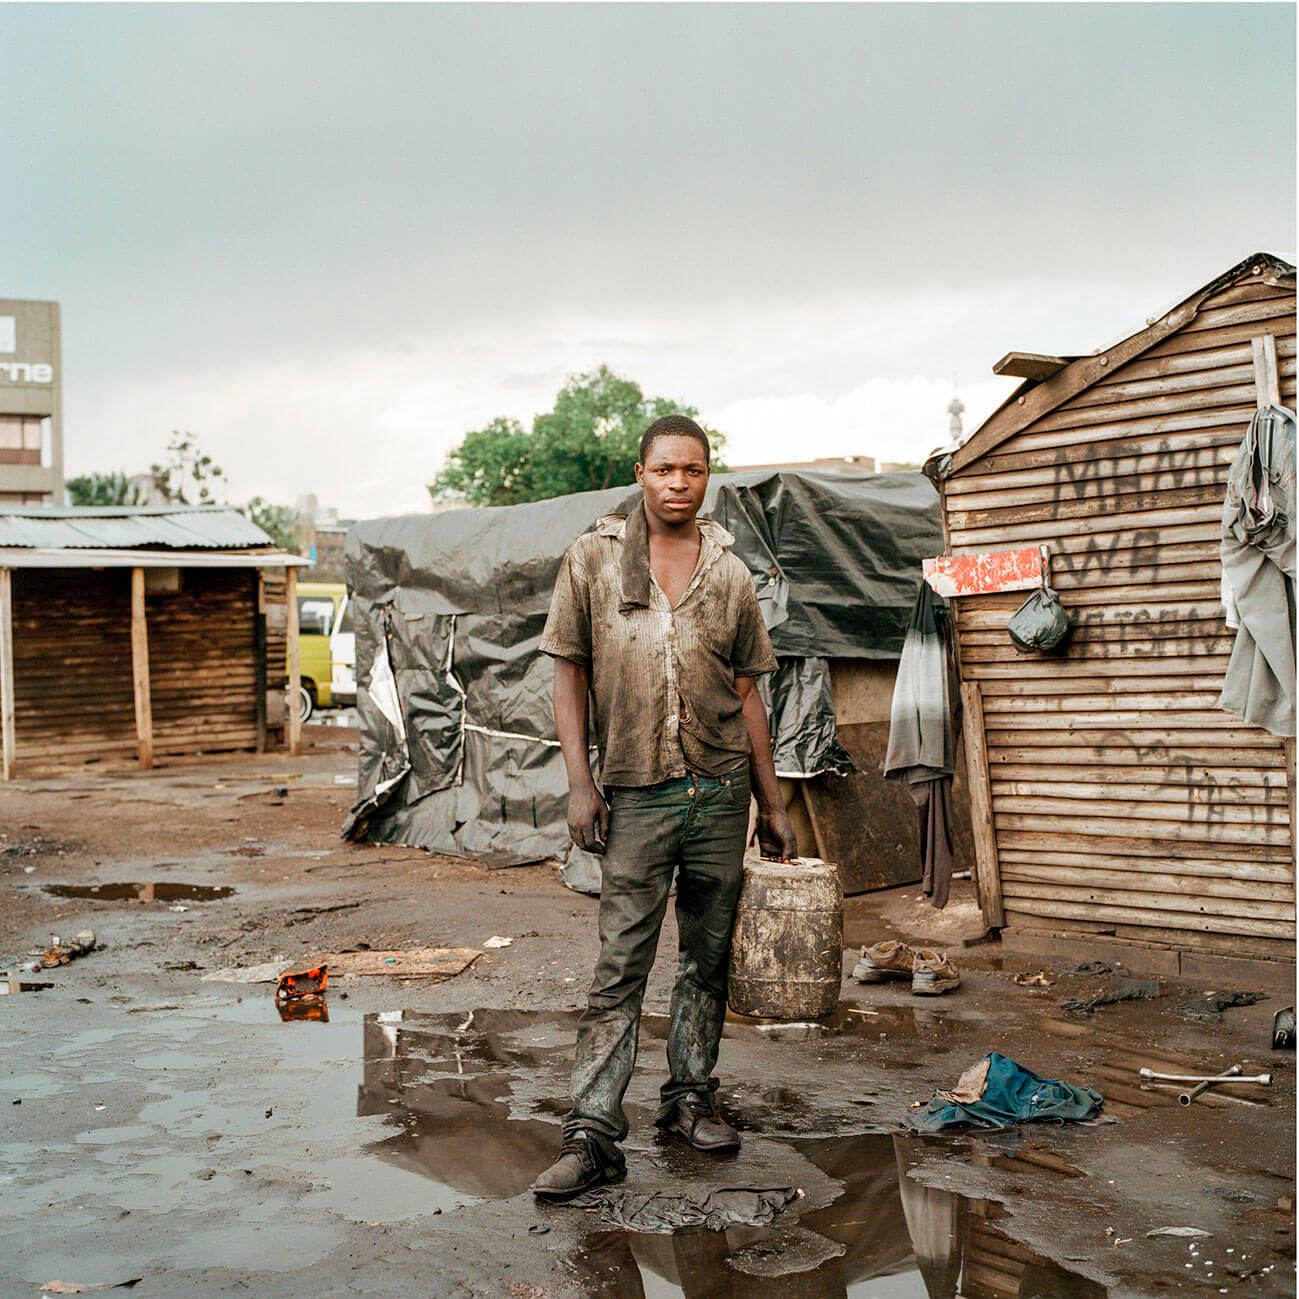 Claudio Rasano SOUTH AFRICA EVERYONE LIVE IN THE SAME PLACE LIKE BEFORE portrait of man in dirty clothes